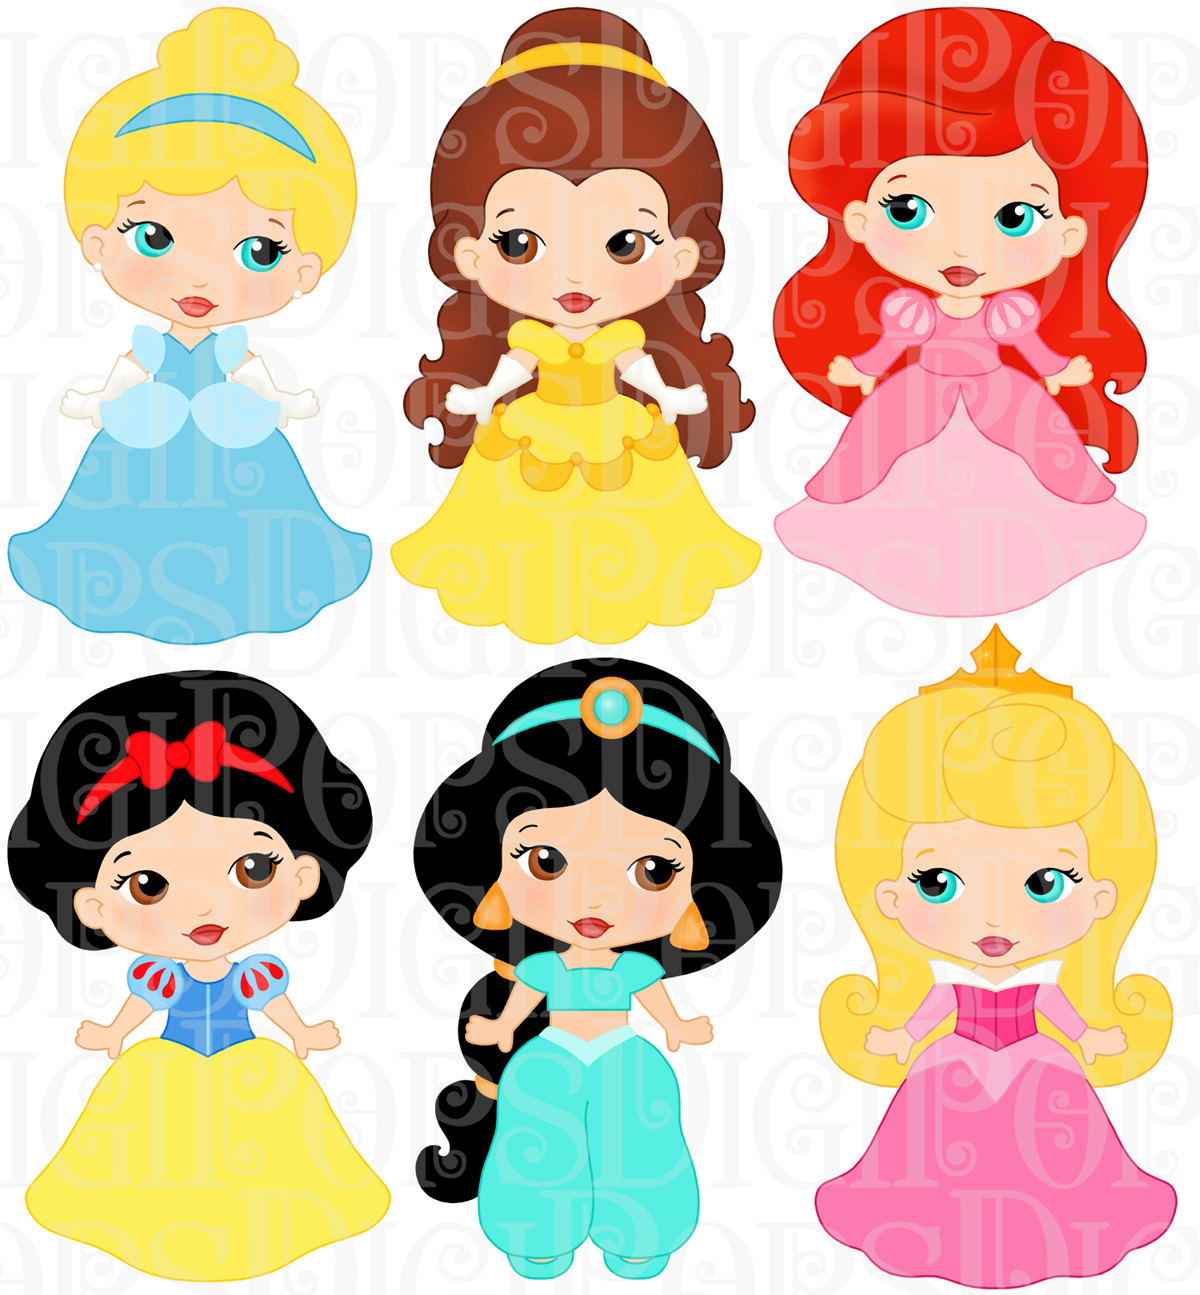 Baby belle clipart png royalty free download Baby belle clipart - ClipartFest png royalty free download